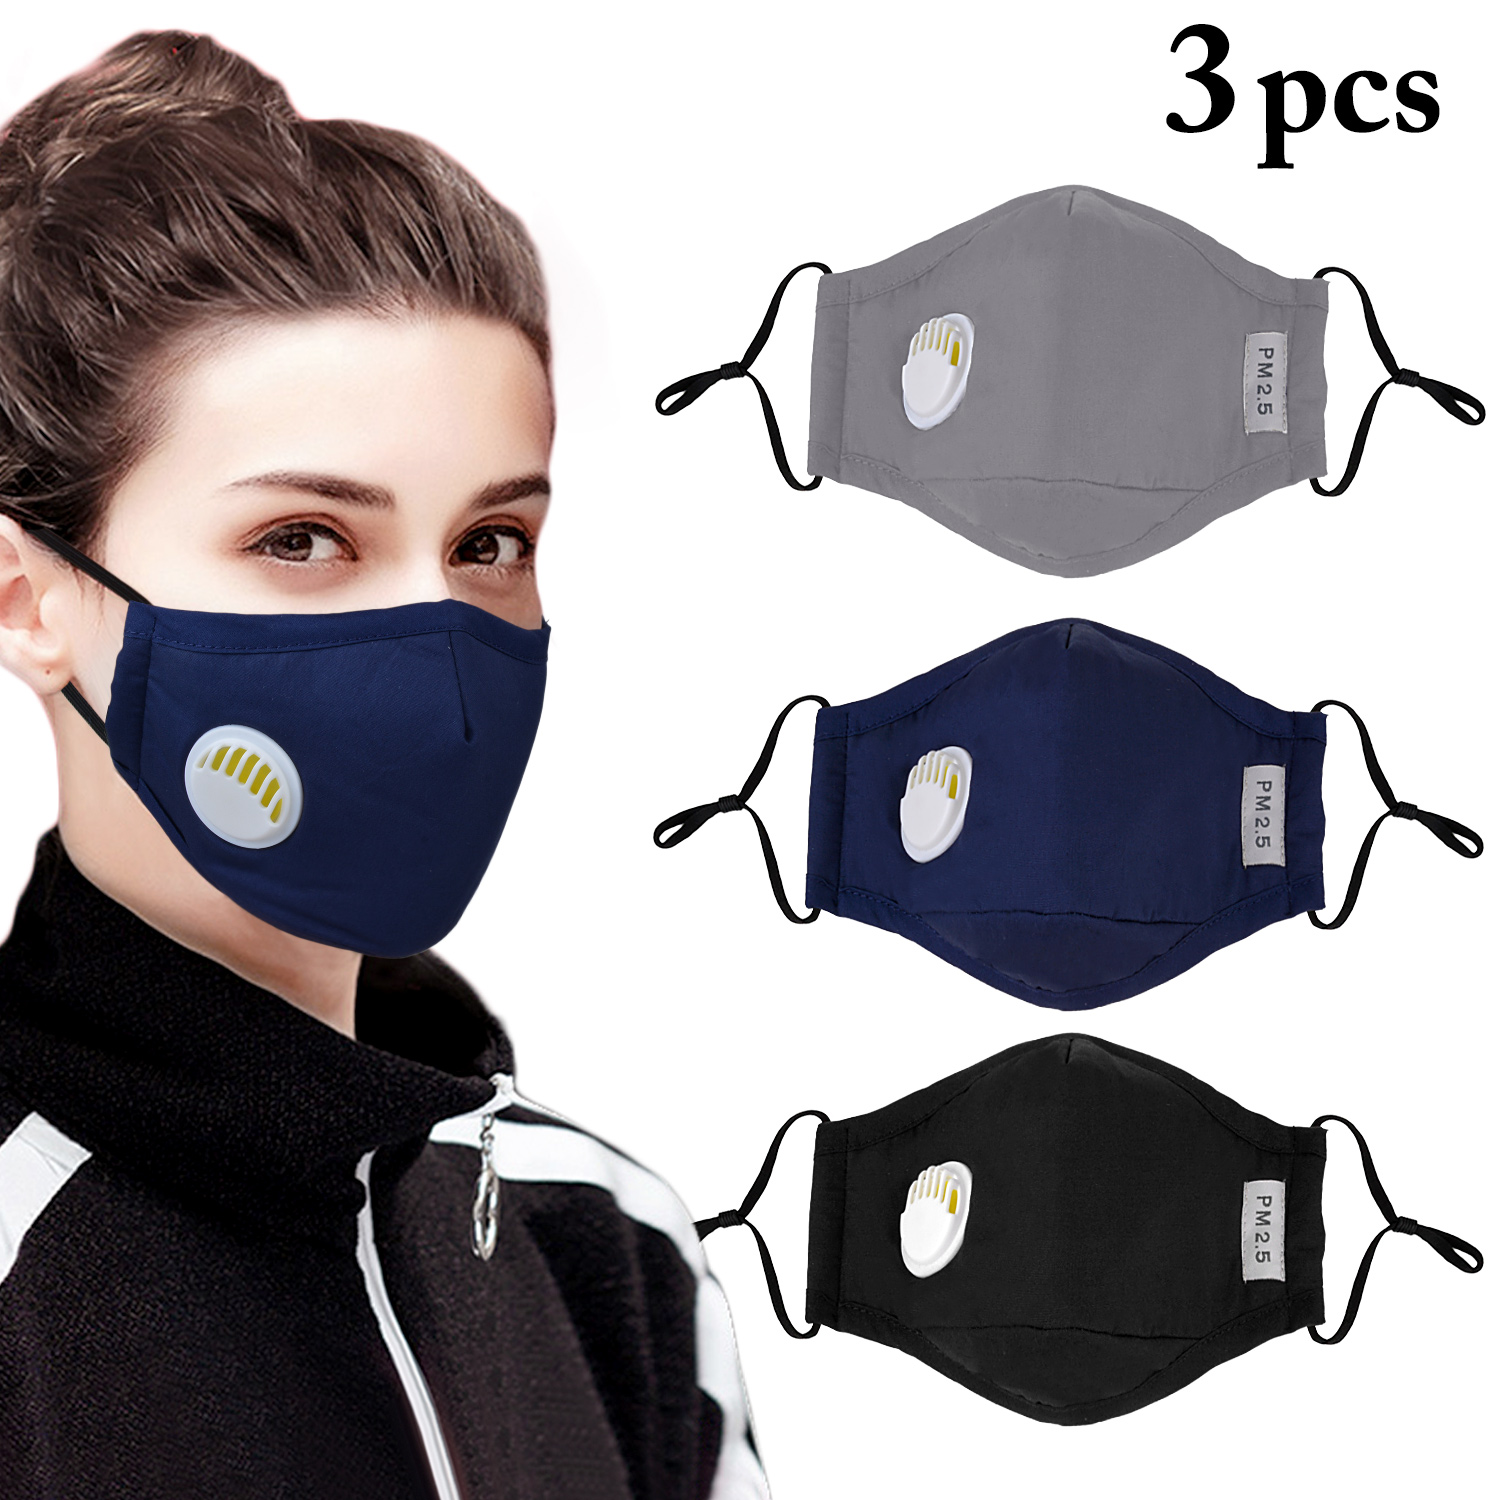 3PCS Cotton Dustproof Mouth Face Mask Mouth Masks Activated Carbon PM2.5 Dust Proof Face Masks Mouth Covers Anti Dust